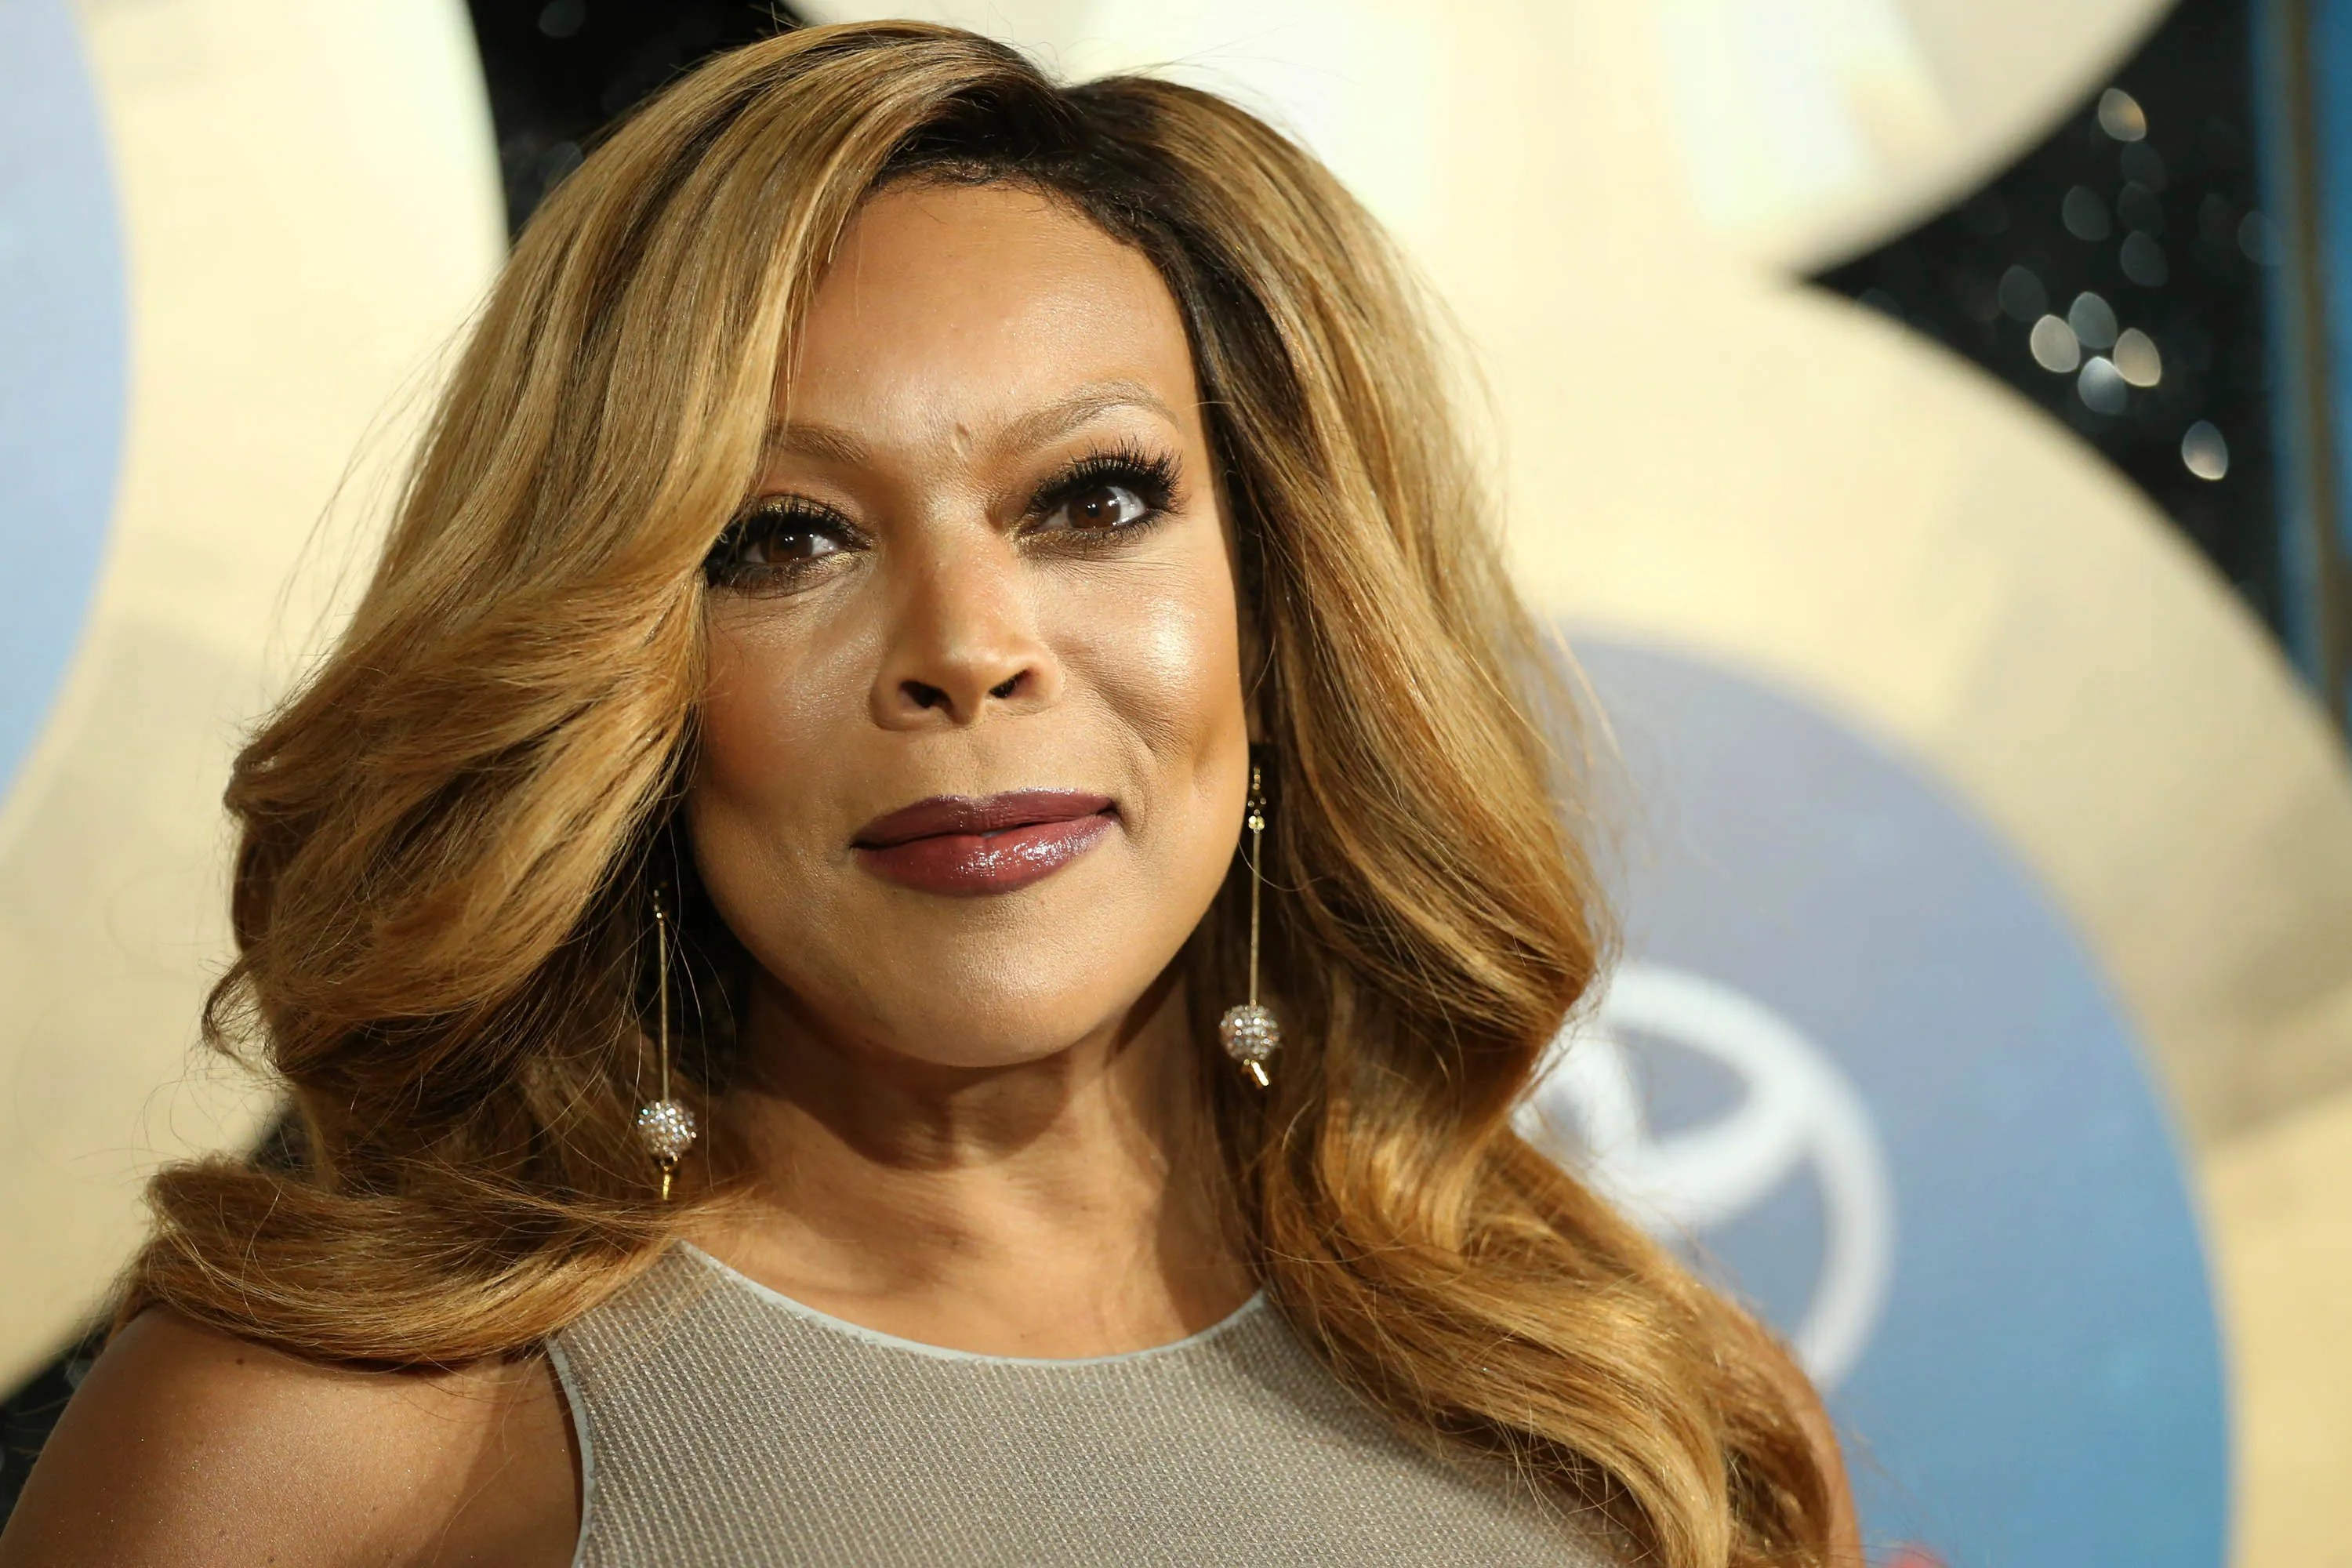 Wendy Williams has taken a handful of breaks over the years from hosting